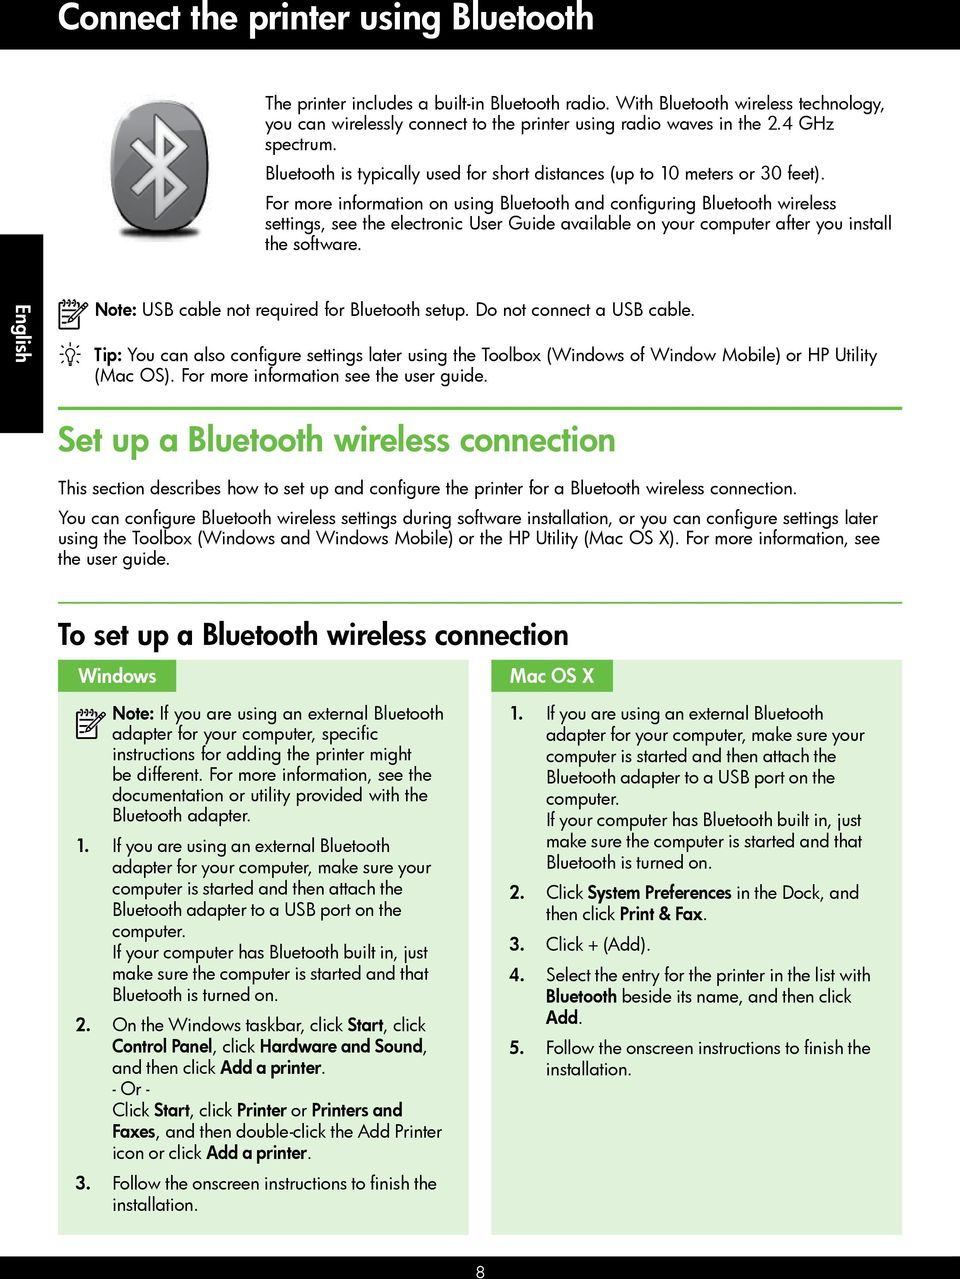 For more information on using Bluetooth and configuring Bluetooth wireless settings, see the electronic User Guide available on your computer after you install the software.